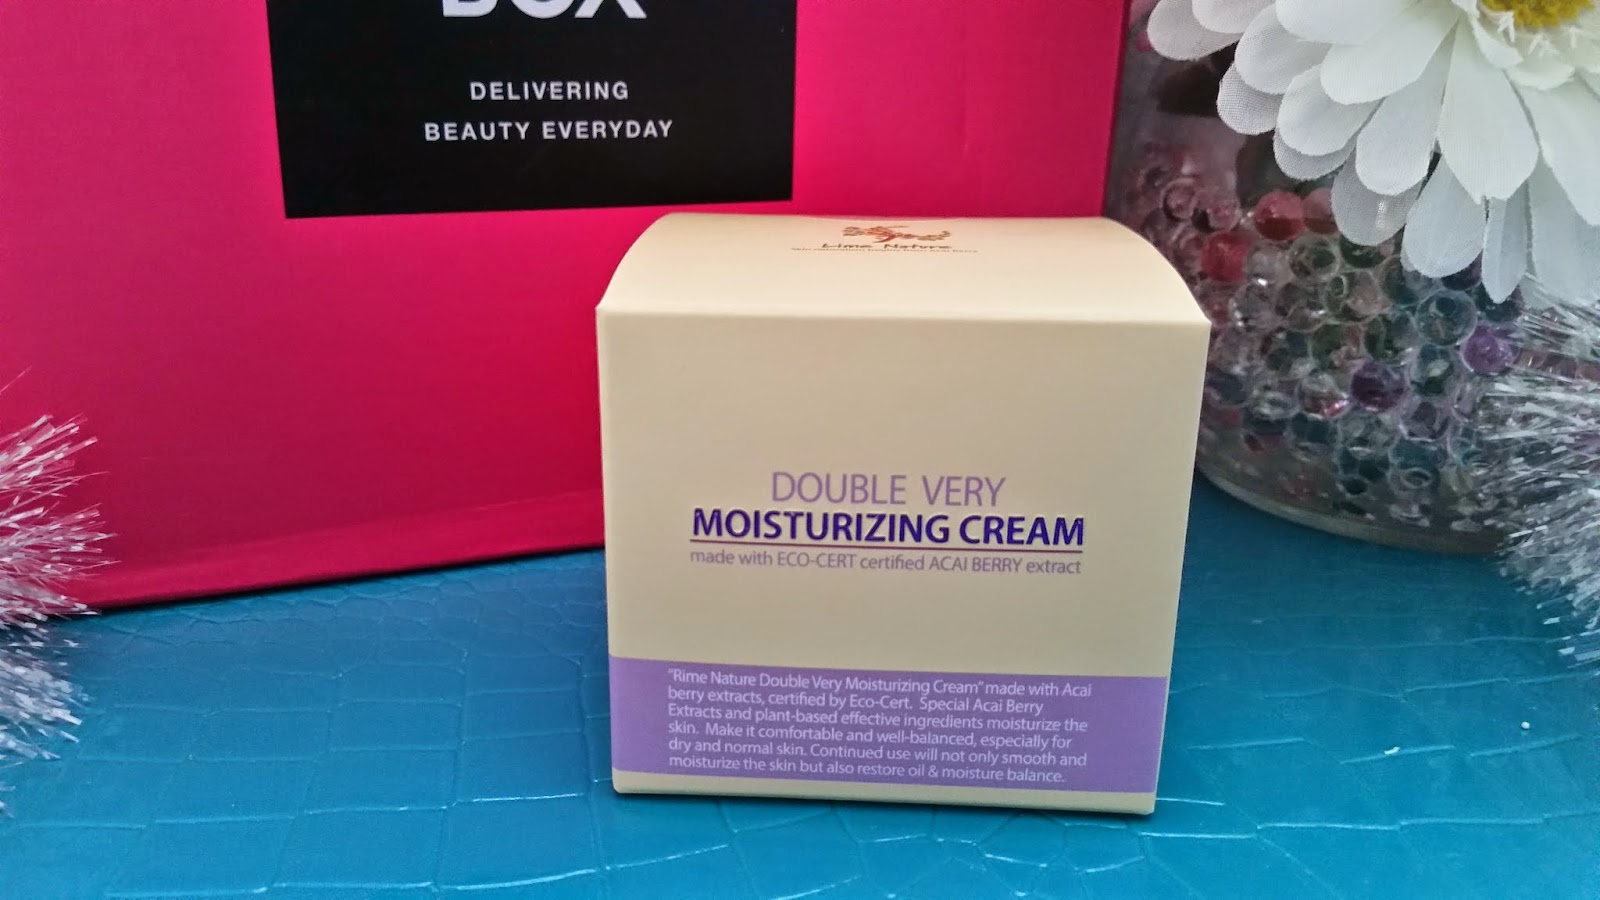 Lime Nature Double Very Moisturizing Cream